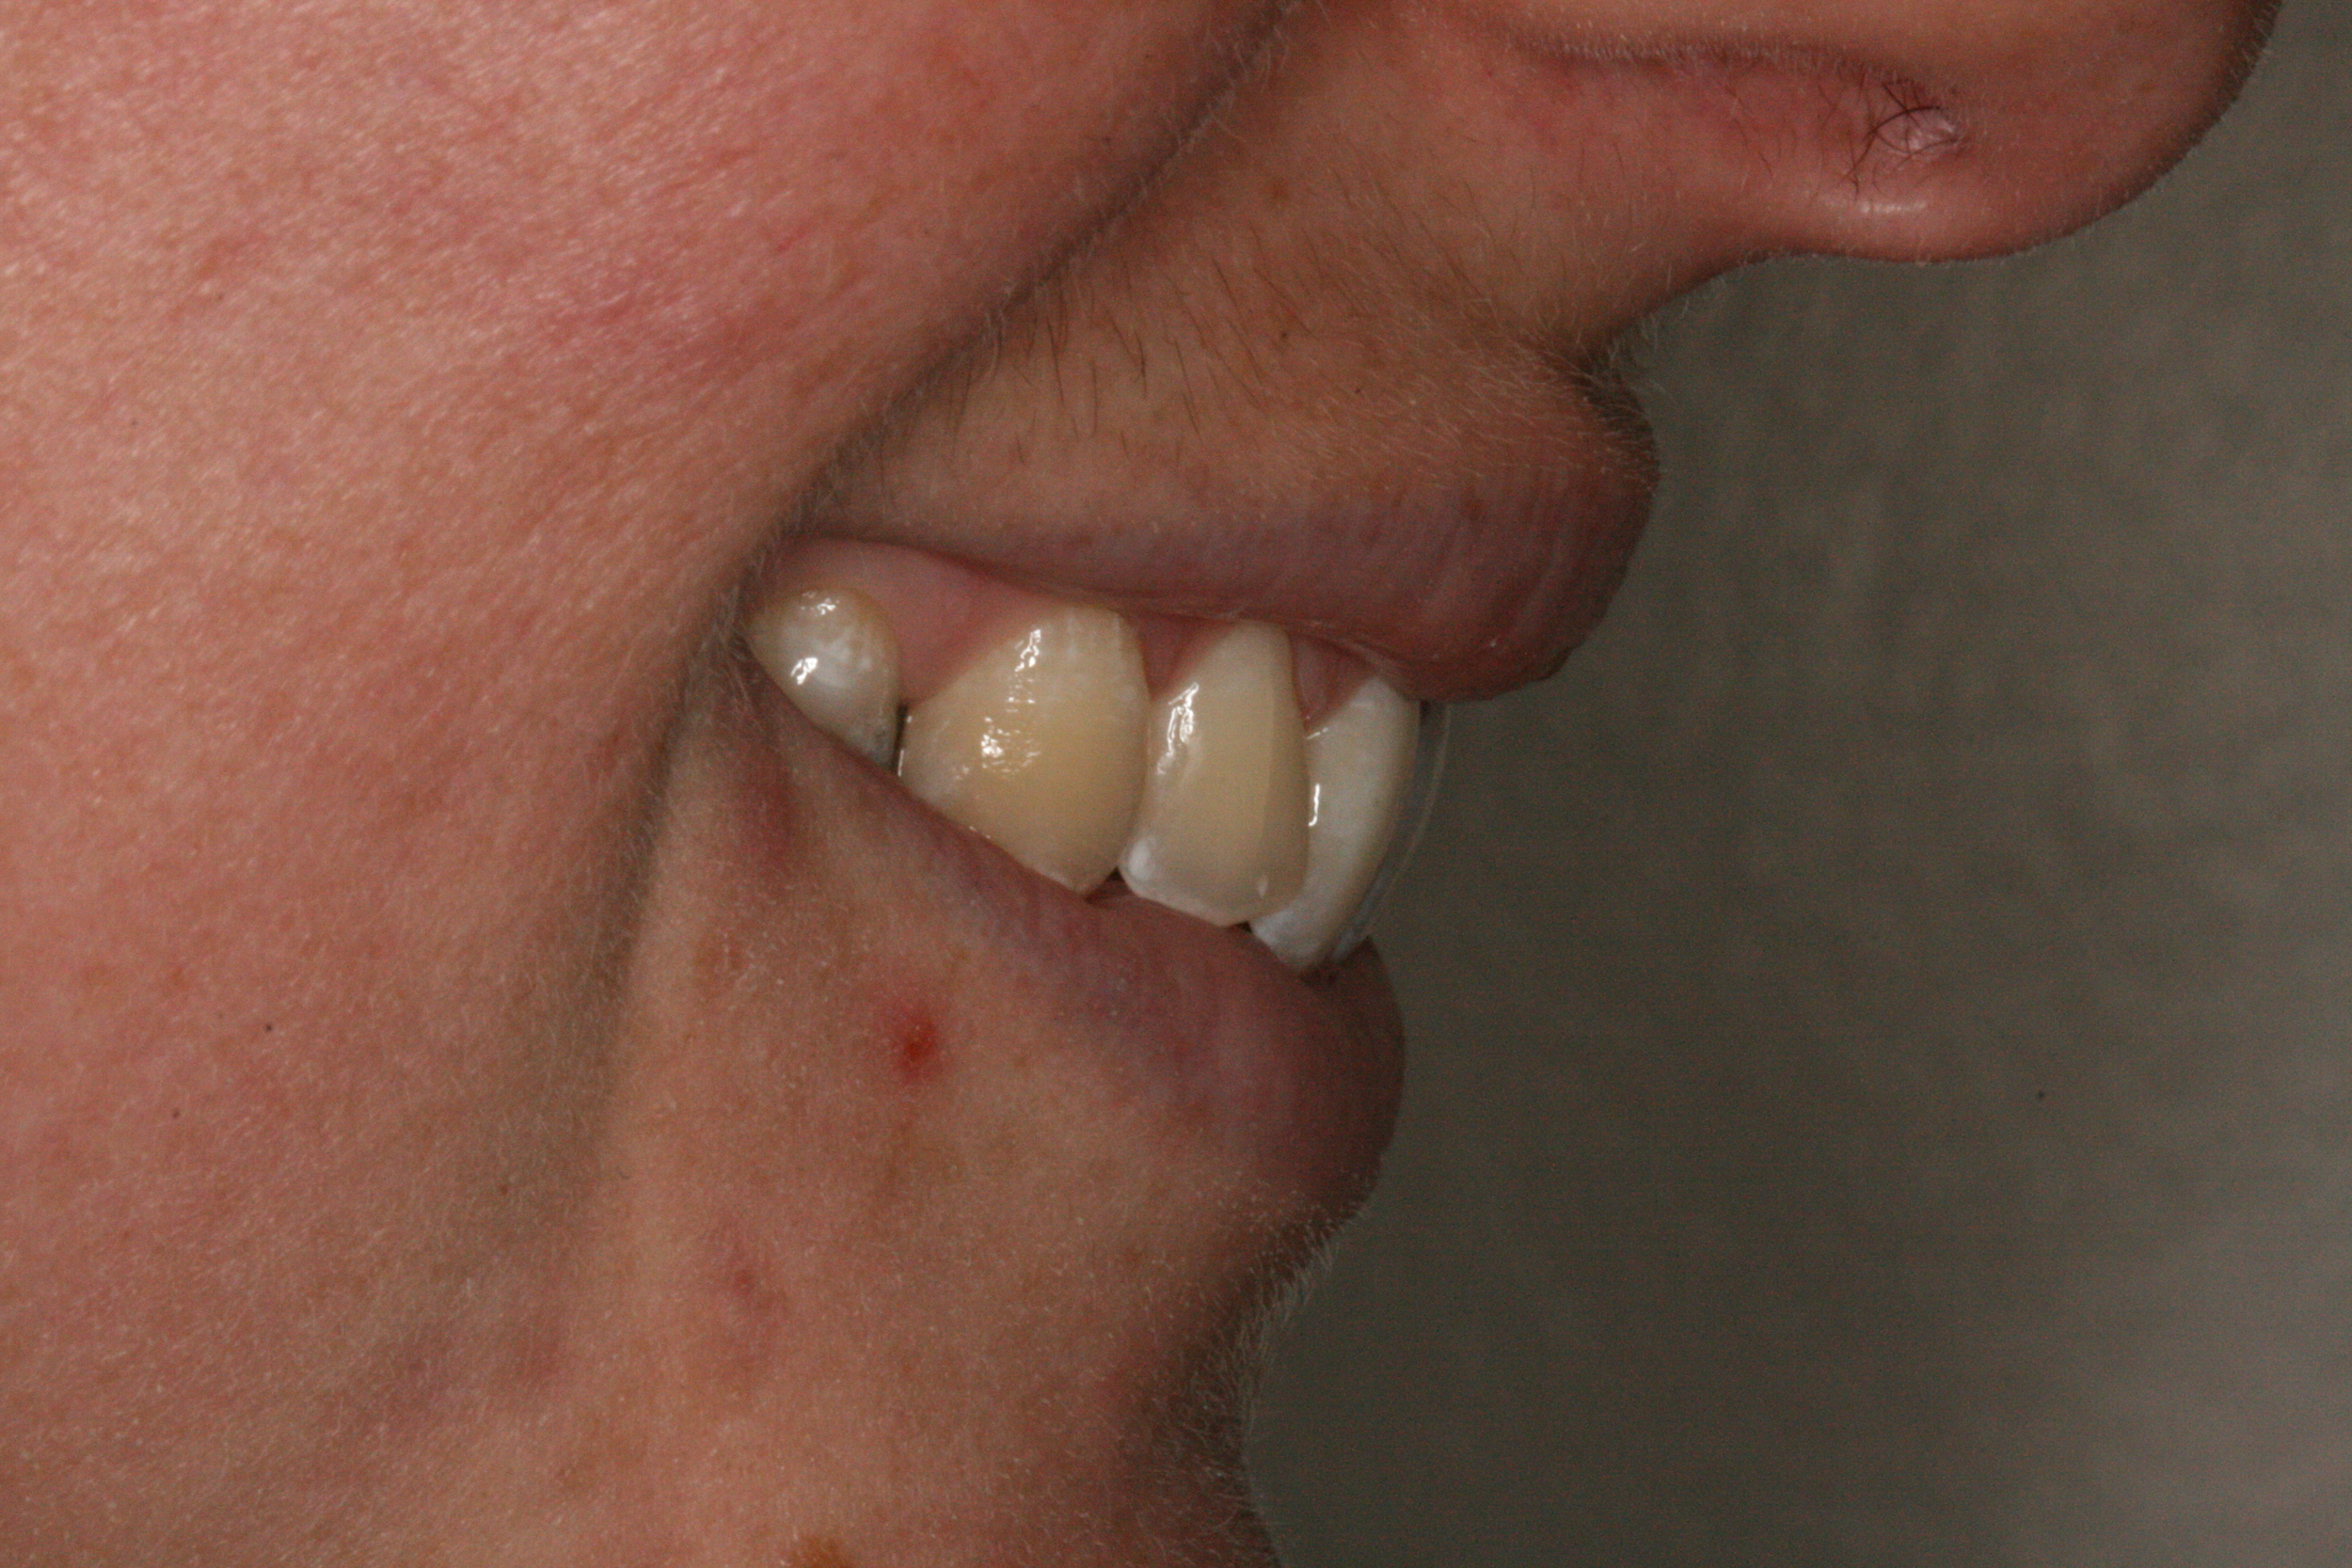 The_Tuddenham_Road_Dental_Surgery_Clear_Aligners4.JPG